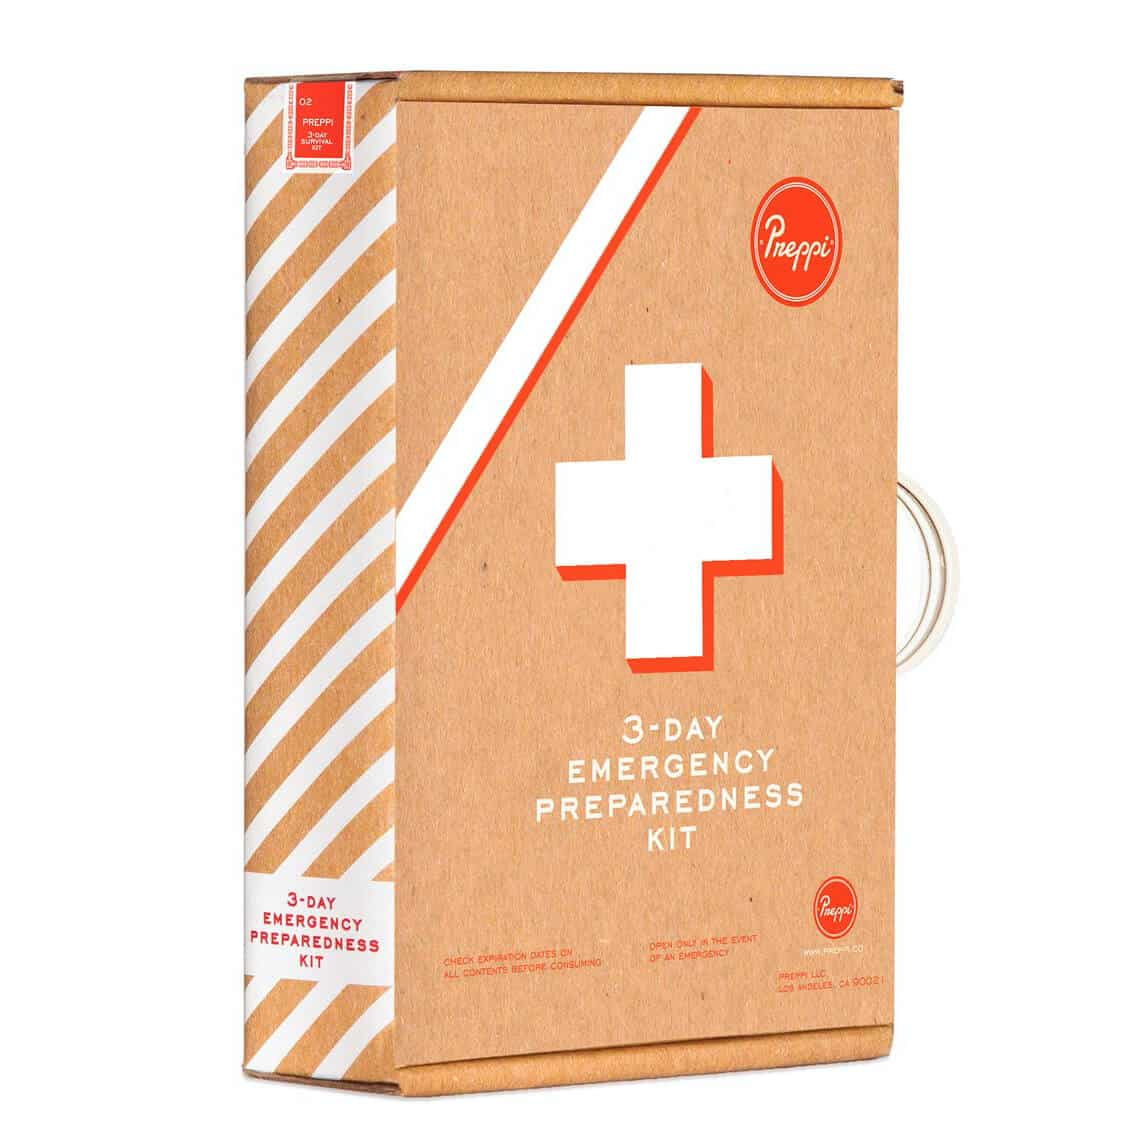 The Preppi GoBox | 3-Day Emergency Kit